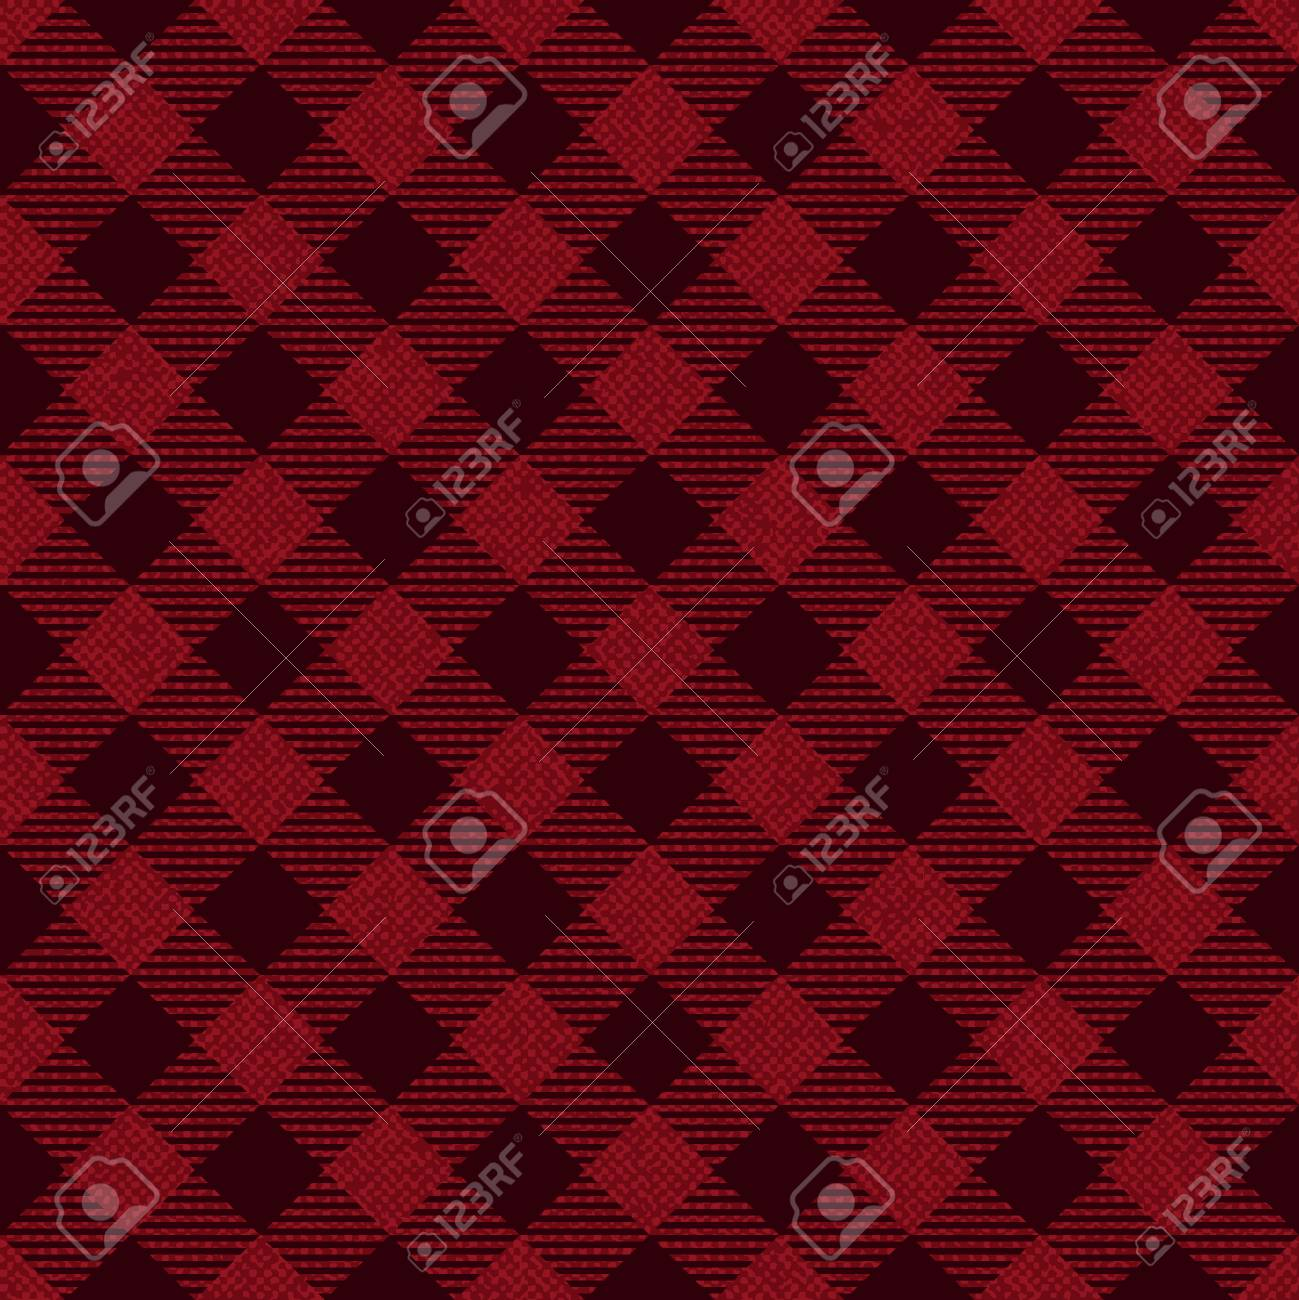 Red And Black Checkered Fabric Pattern Background Royalty Free